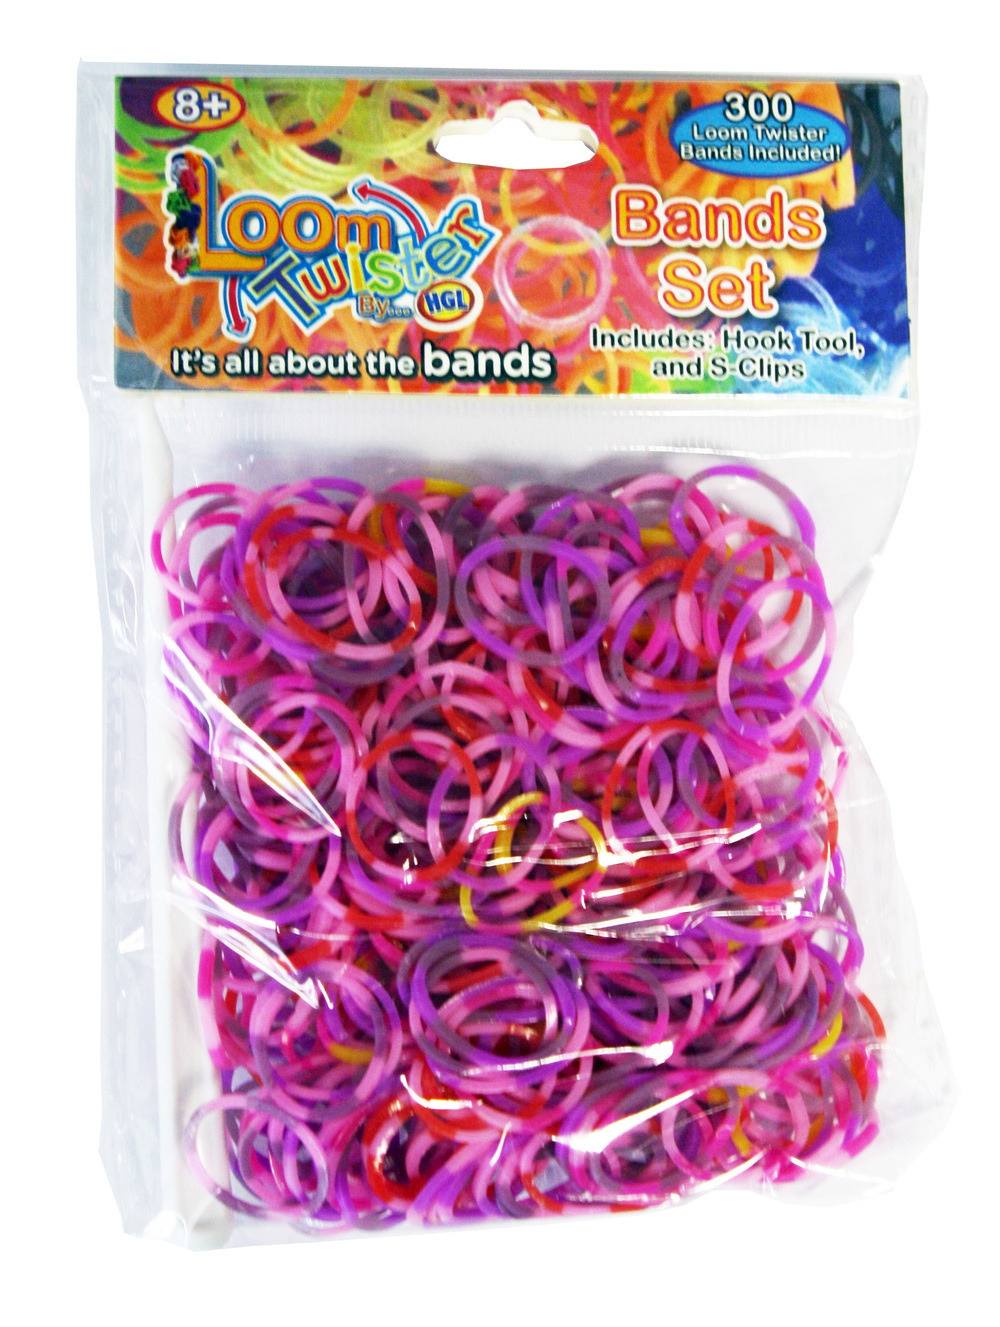 SV11653_LOOM_TWISTER_BANDS.jpg